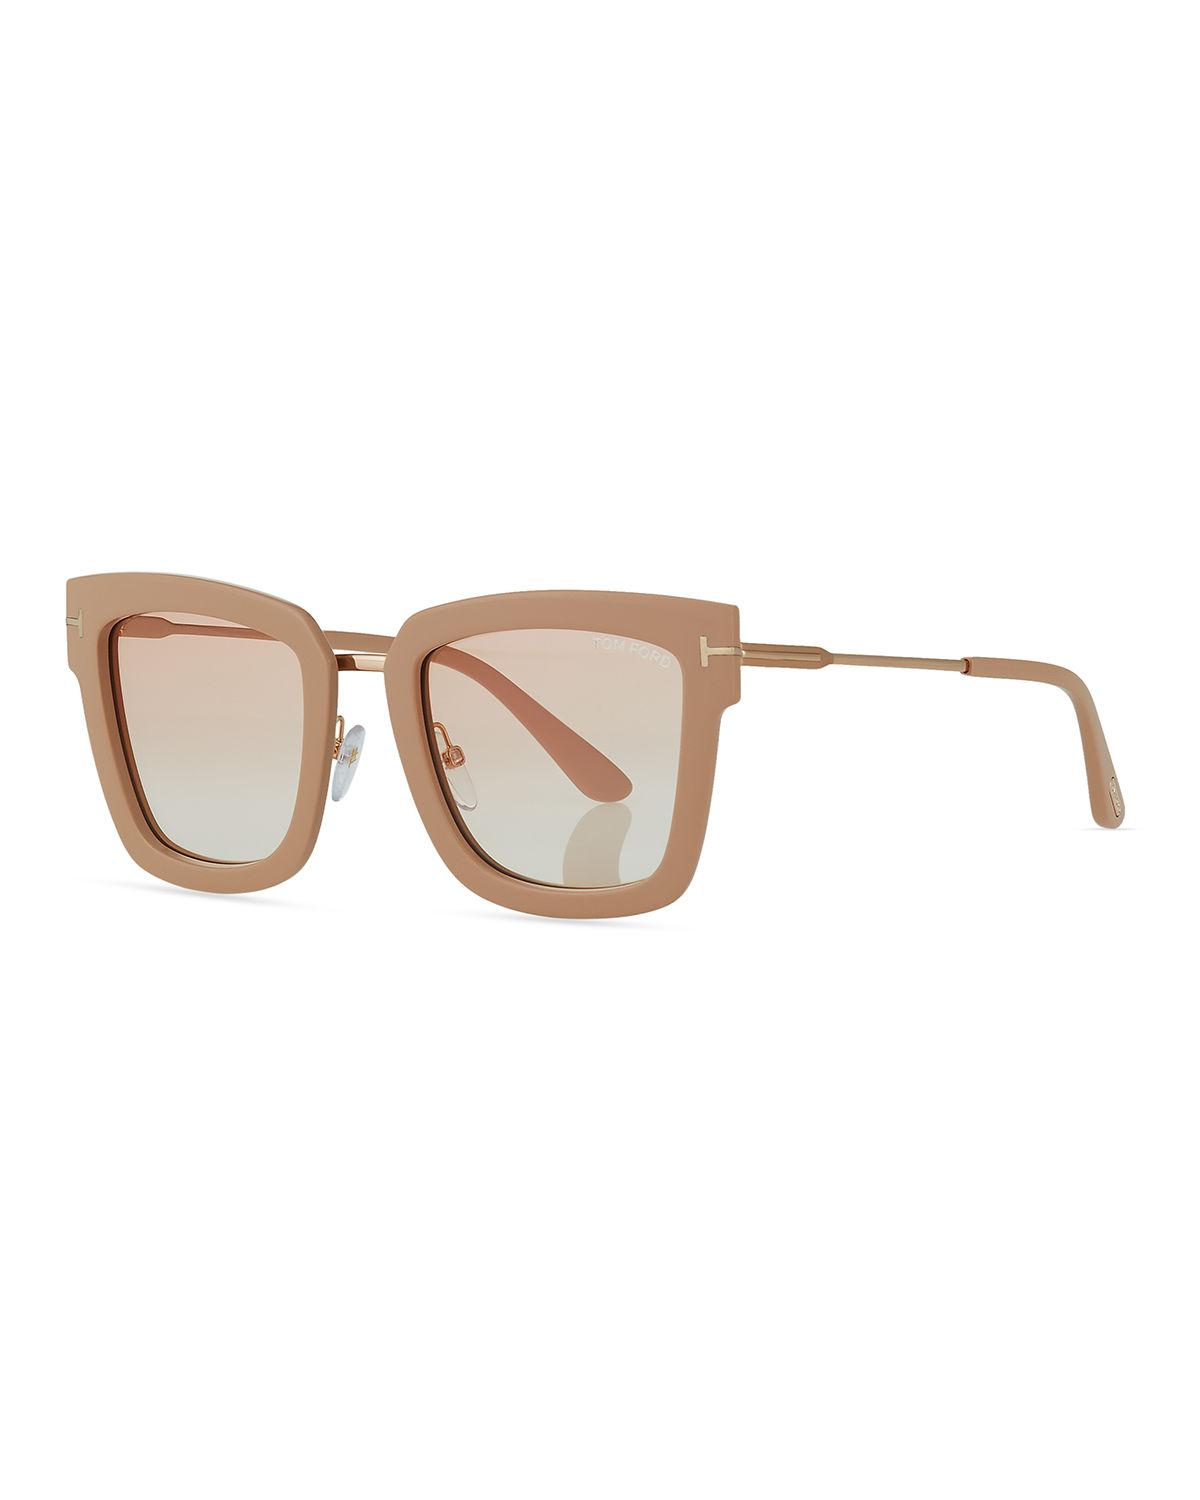 32c3325923 Gallery. Previously sold at  Neiman Marcus · Women s Oversized Square  Sunglasses Women s Acetate ...